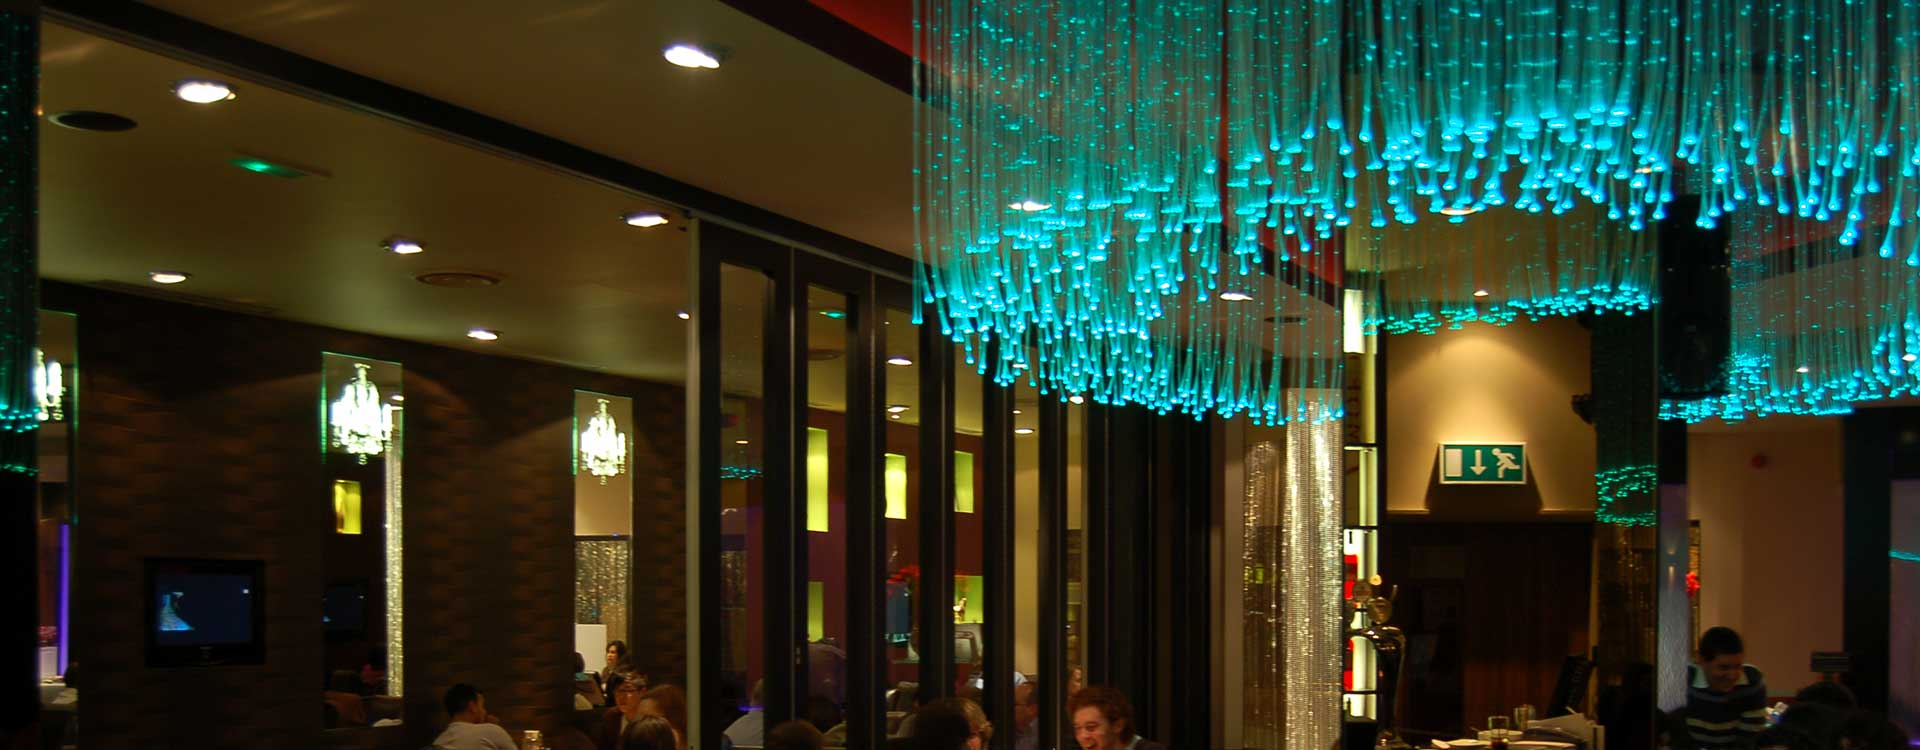 fibre optic chandelier in the curry lounge